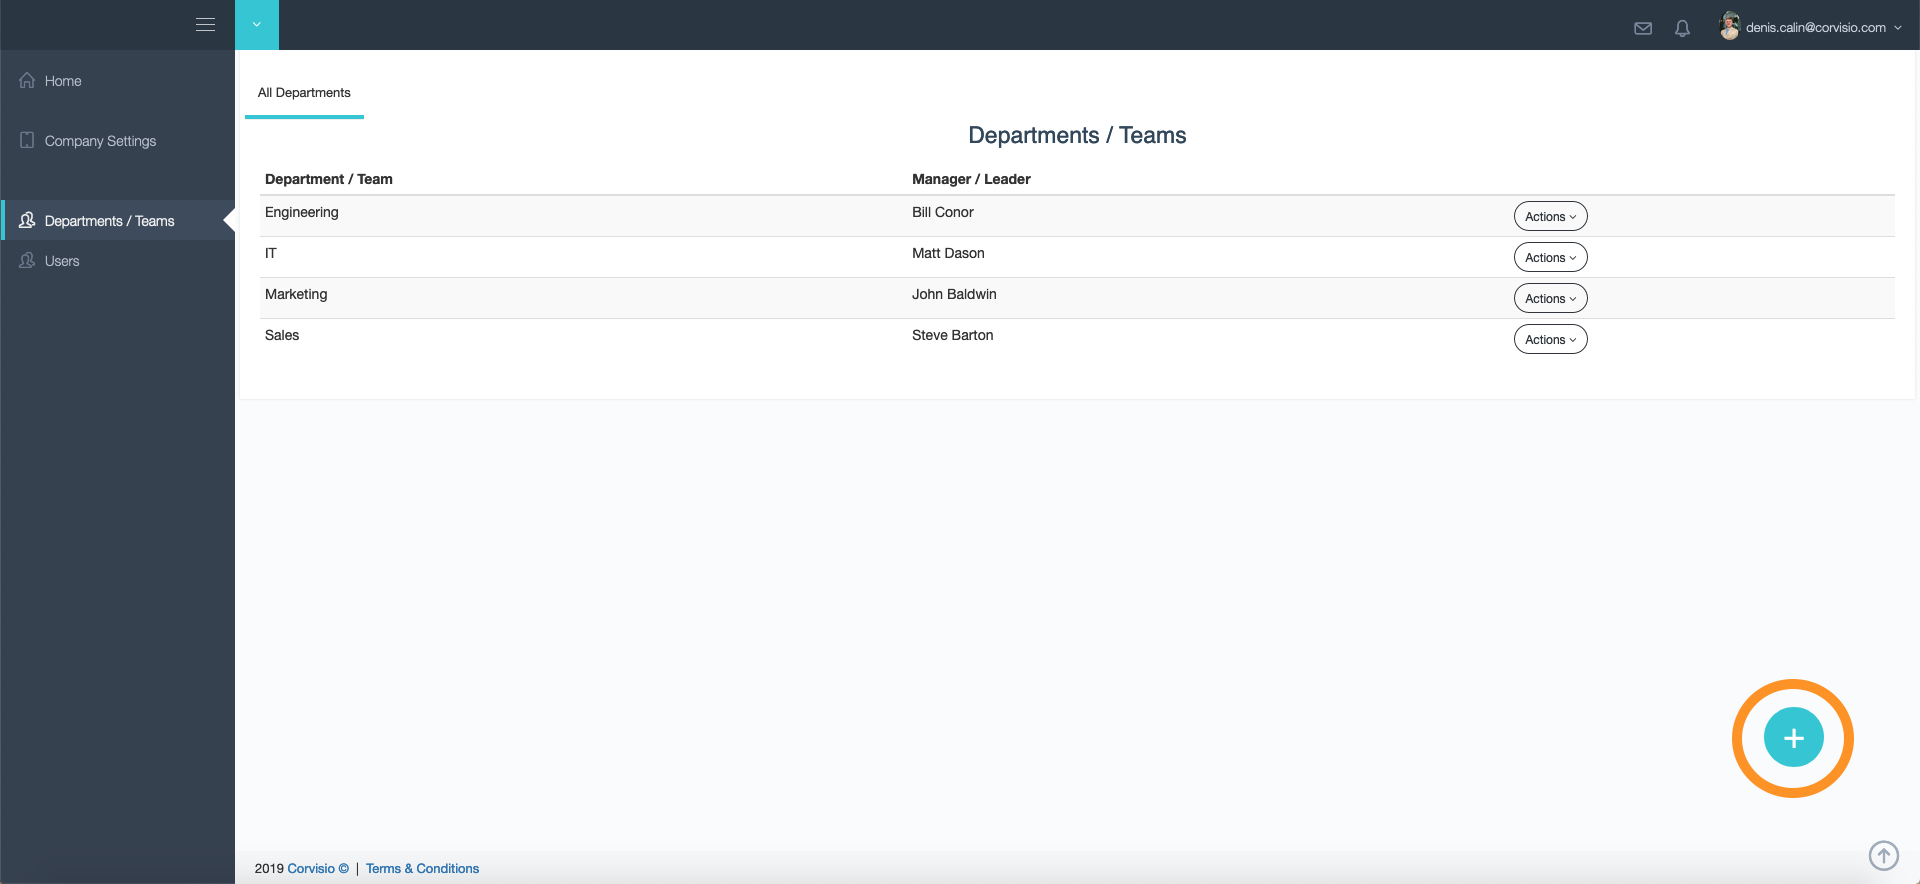 In the Departments/Teams tab you can add new teams and dapartments to your company profile